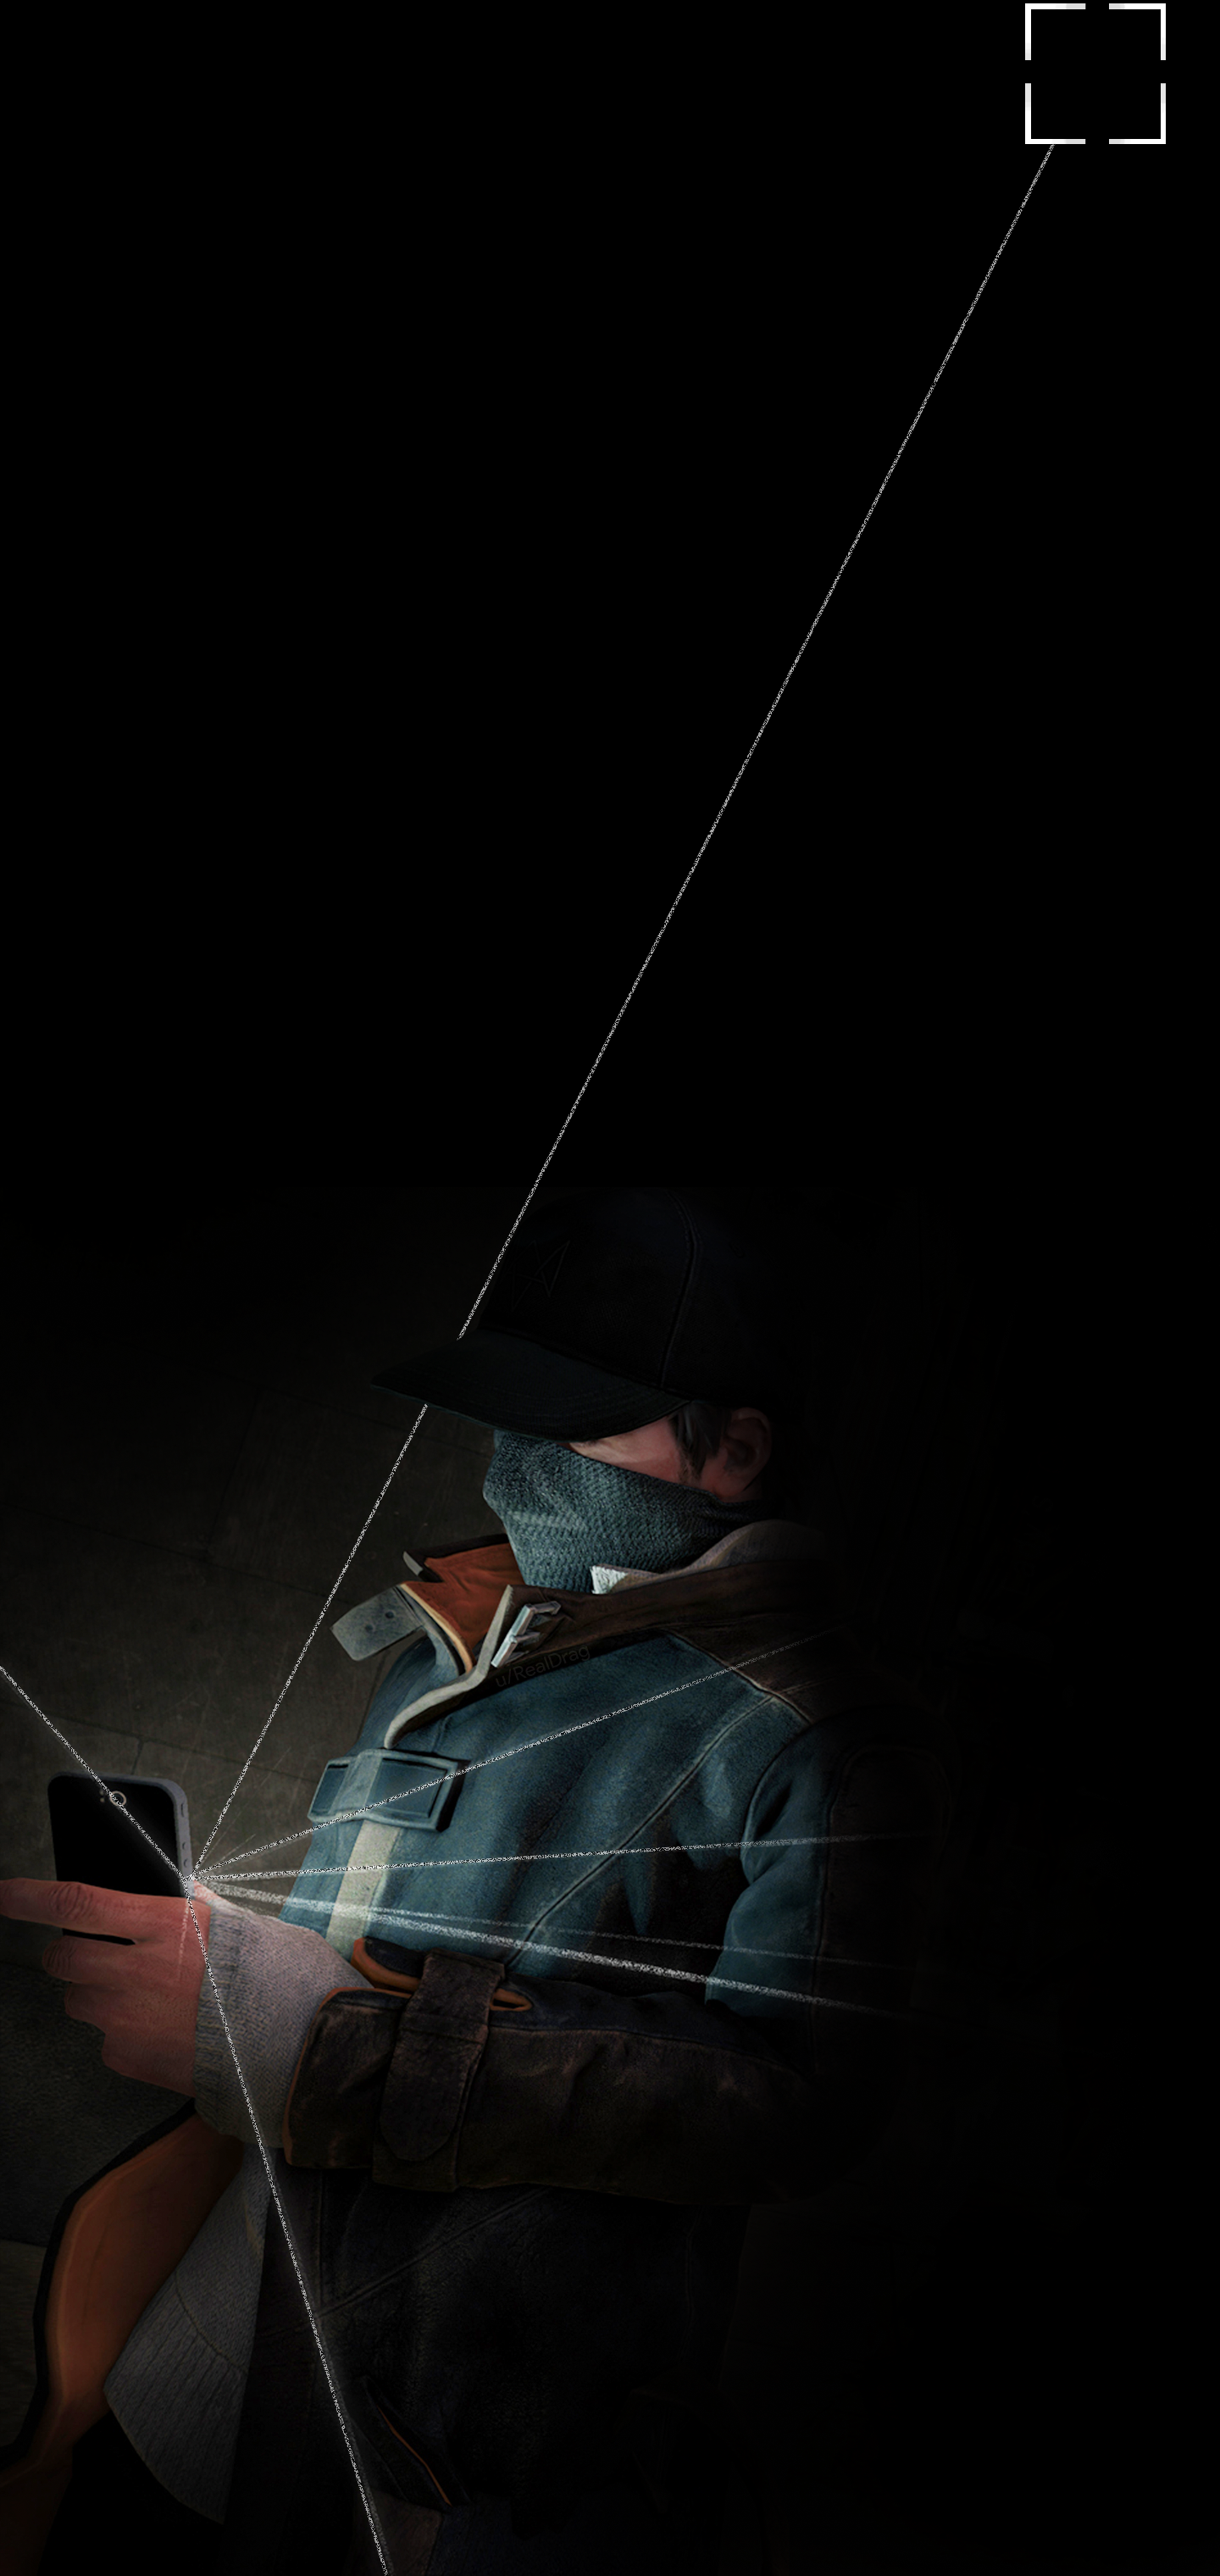 Watch Dogs Wallpaper For S10 And S10e Samsung Galaxy Wallpaper Watch Dogs Dog Wallpaper